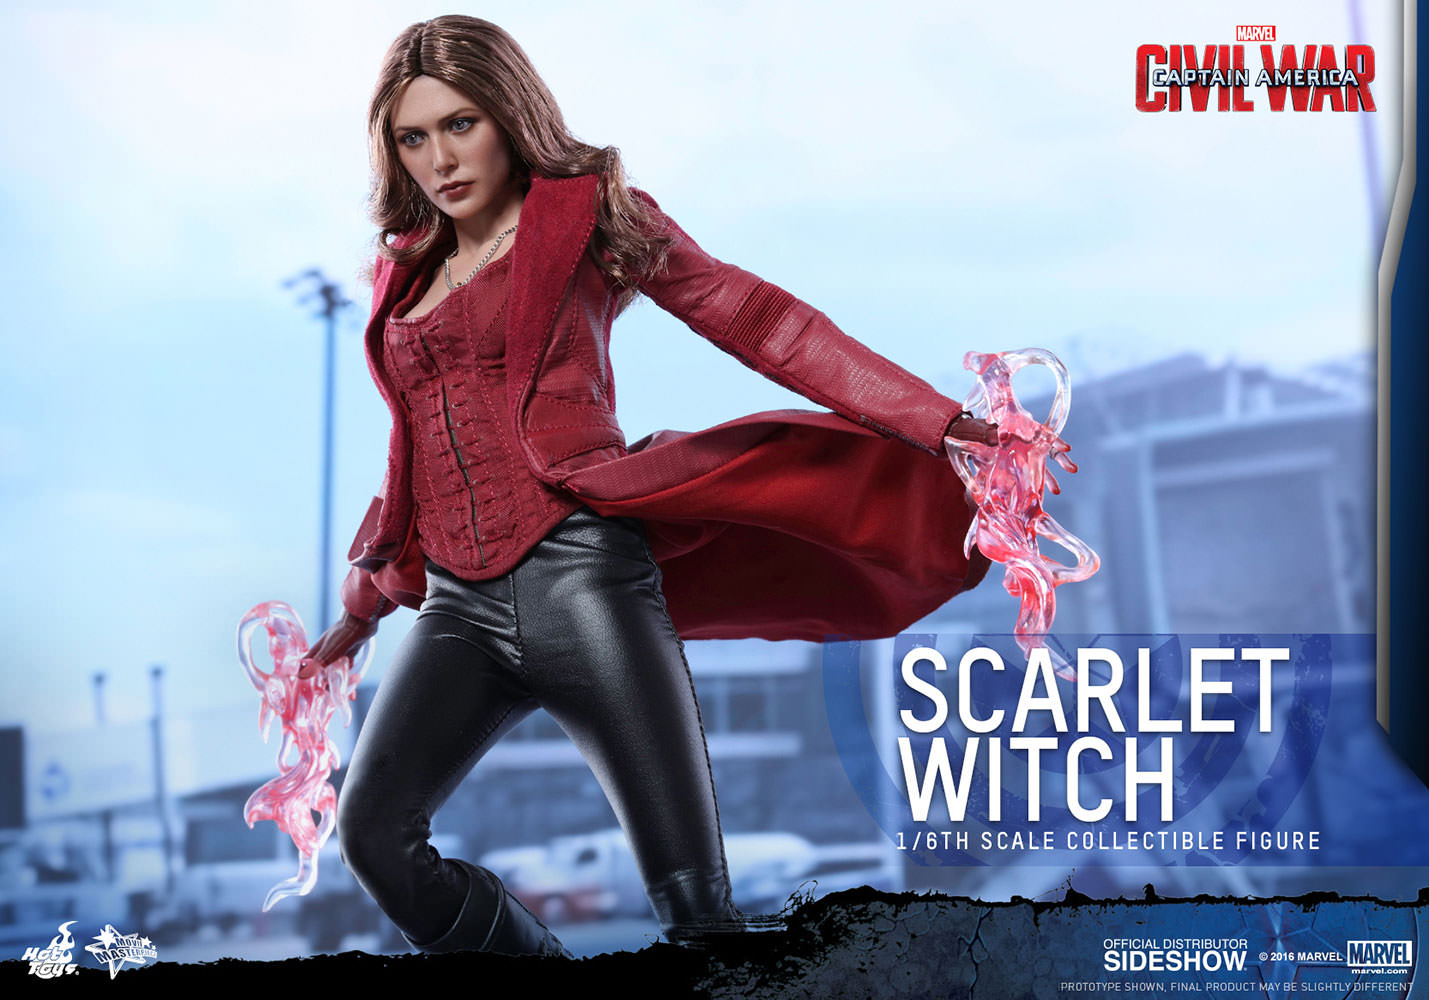 marvel-captain-america-civil-war-scarlet-witch-sixth-scale-hot-toys-902740-09.jpg